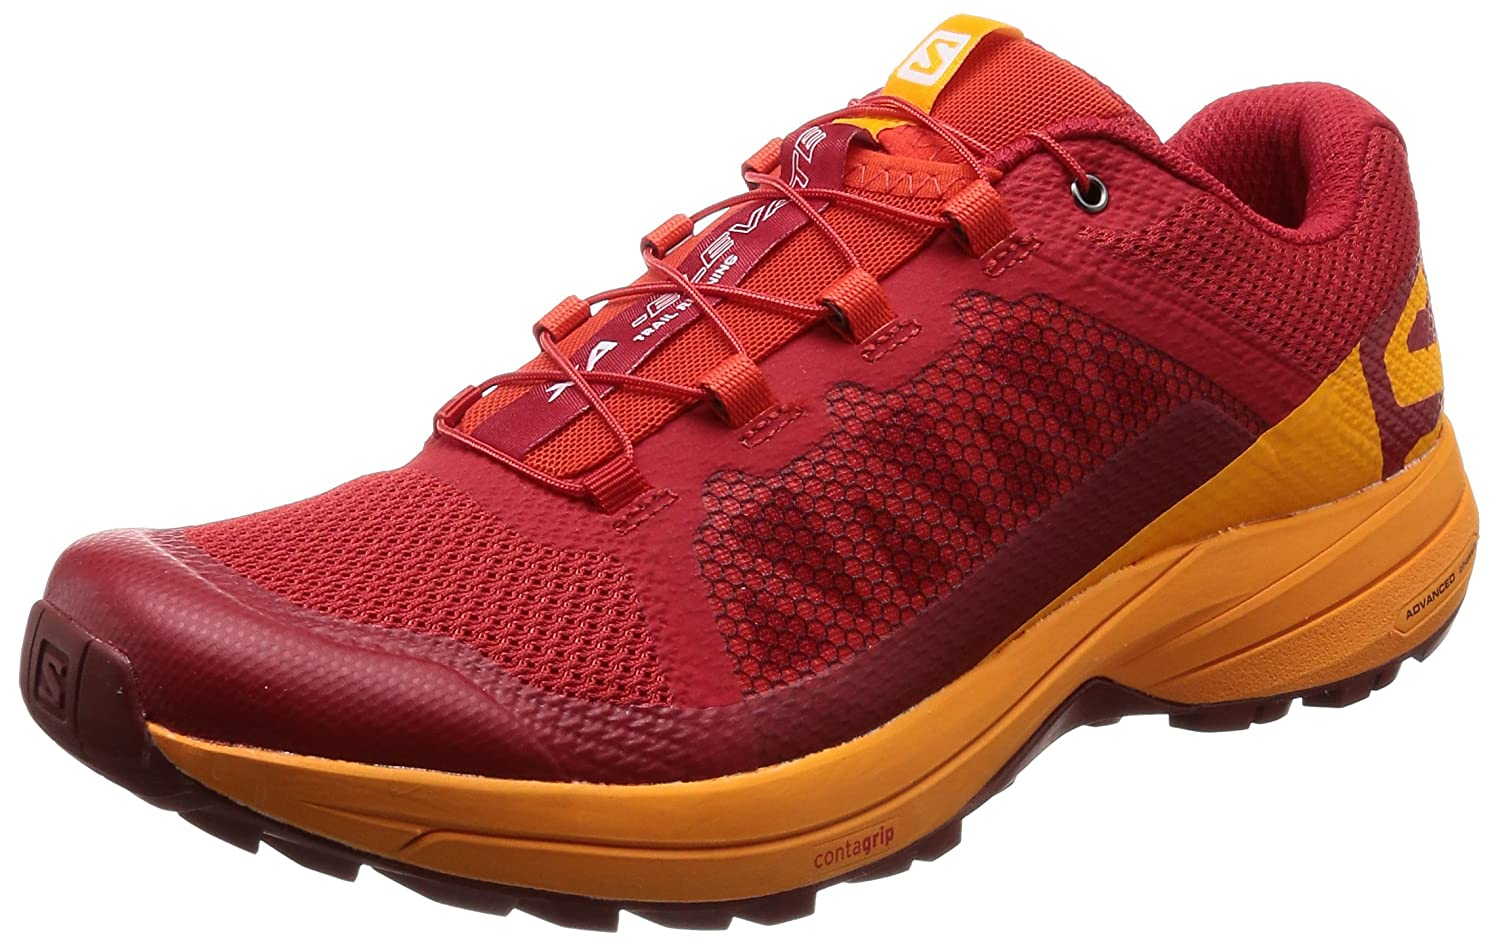 Salomon XA Elevate, Zapatillas de Trail Running para Hombre 42 2/3 EU|Rojo (Barbados Cherry/Bright Marigold/Syr 000)